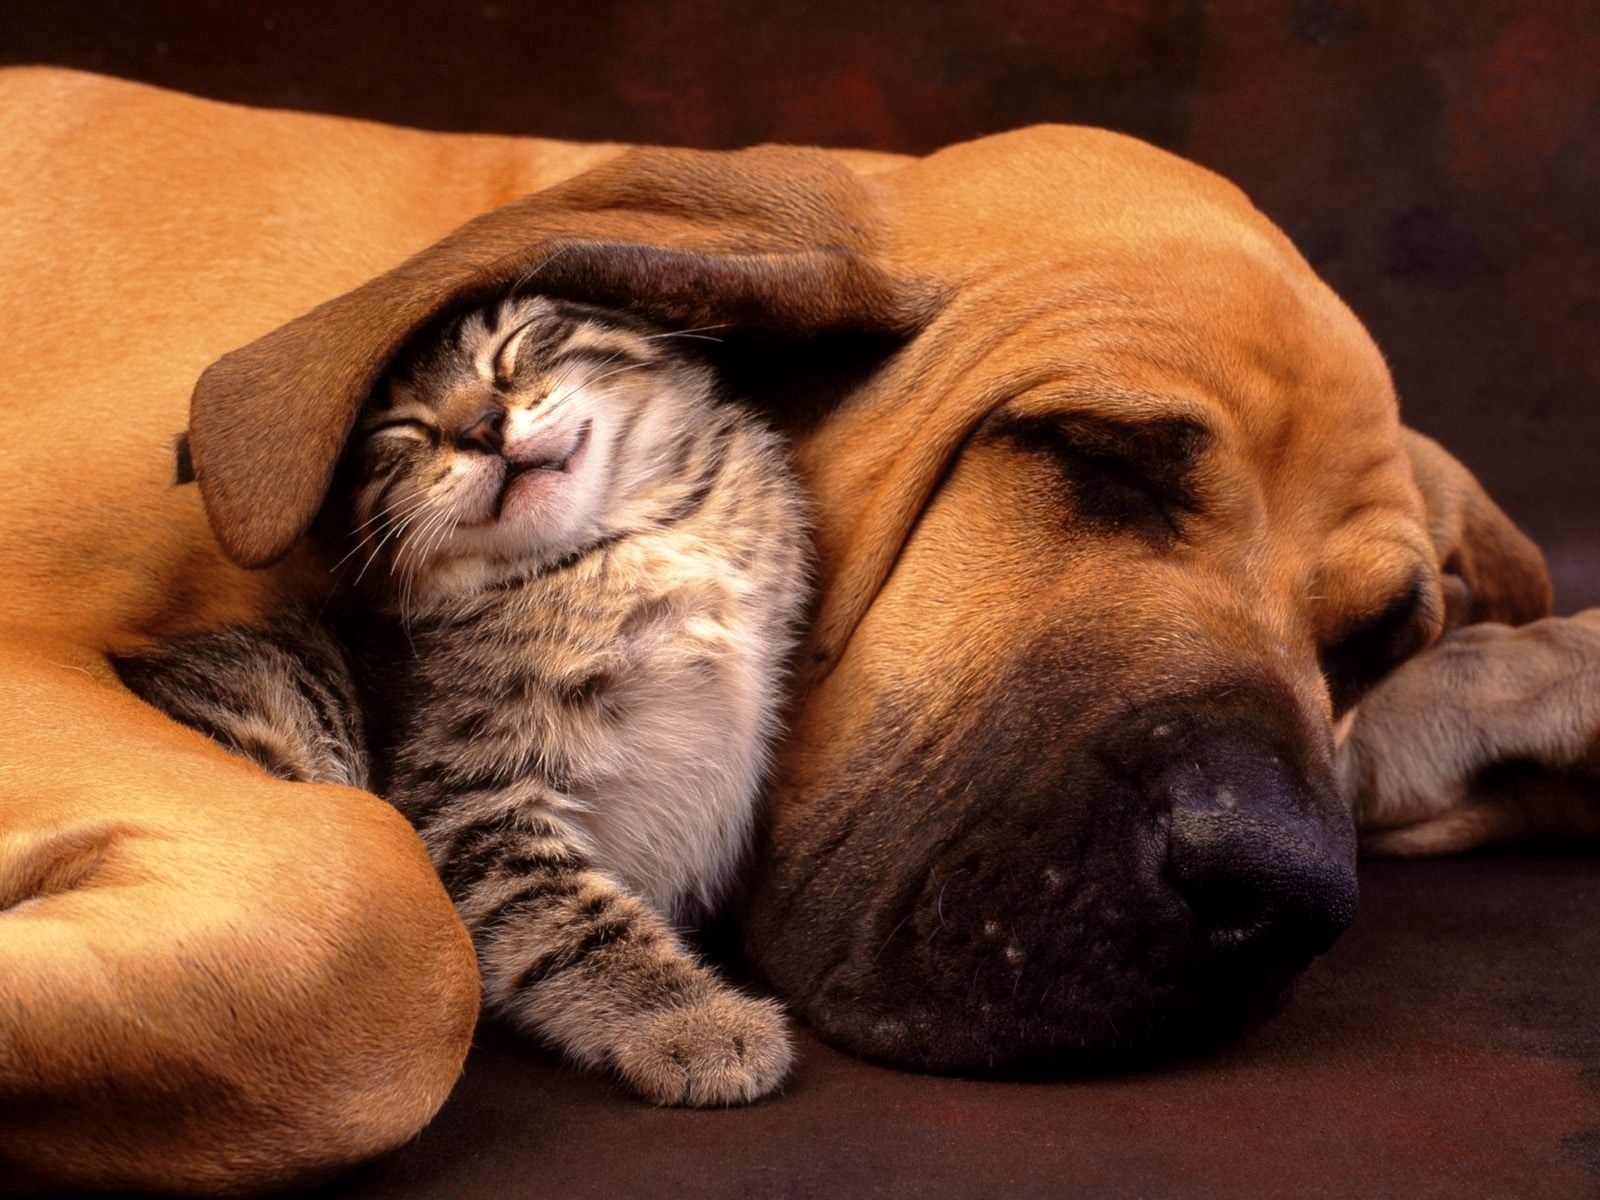 105848 Screensavers and Wallpapers Kitten for phone. Download Animals, Kitty, Kitten, Dog, Care, Ear, An Ear pictures for free